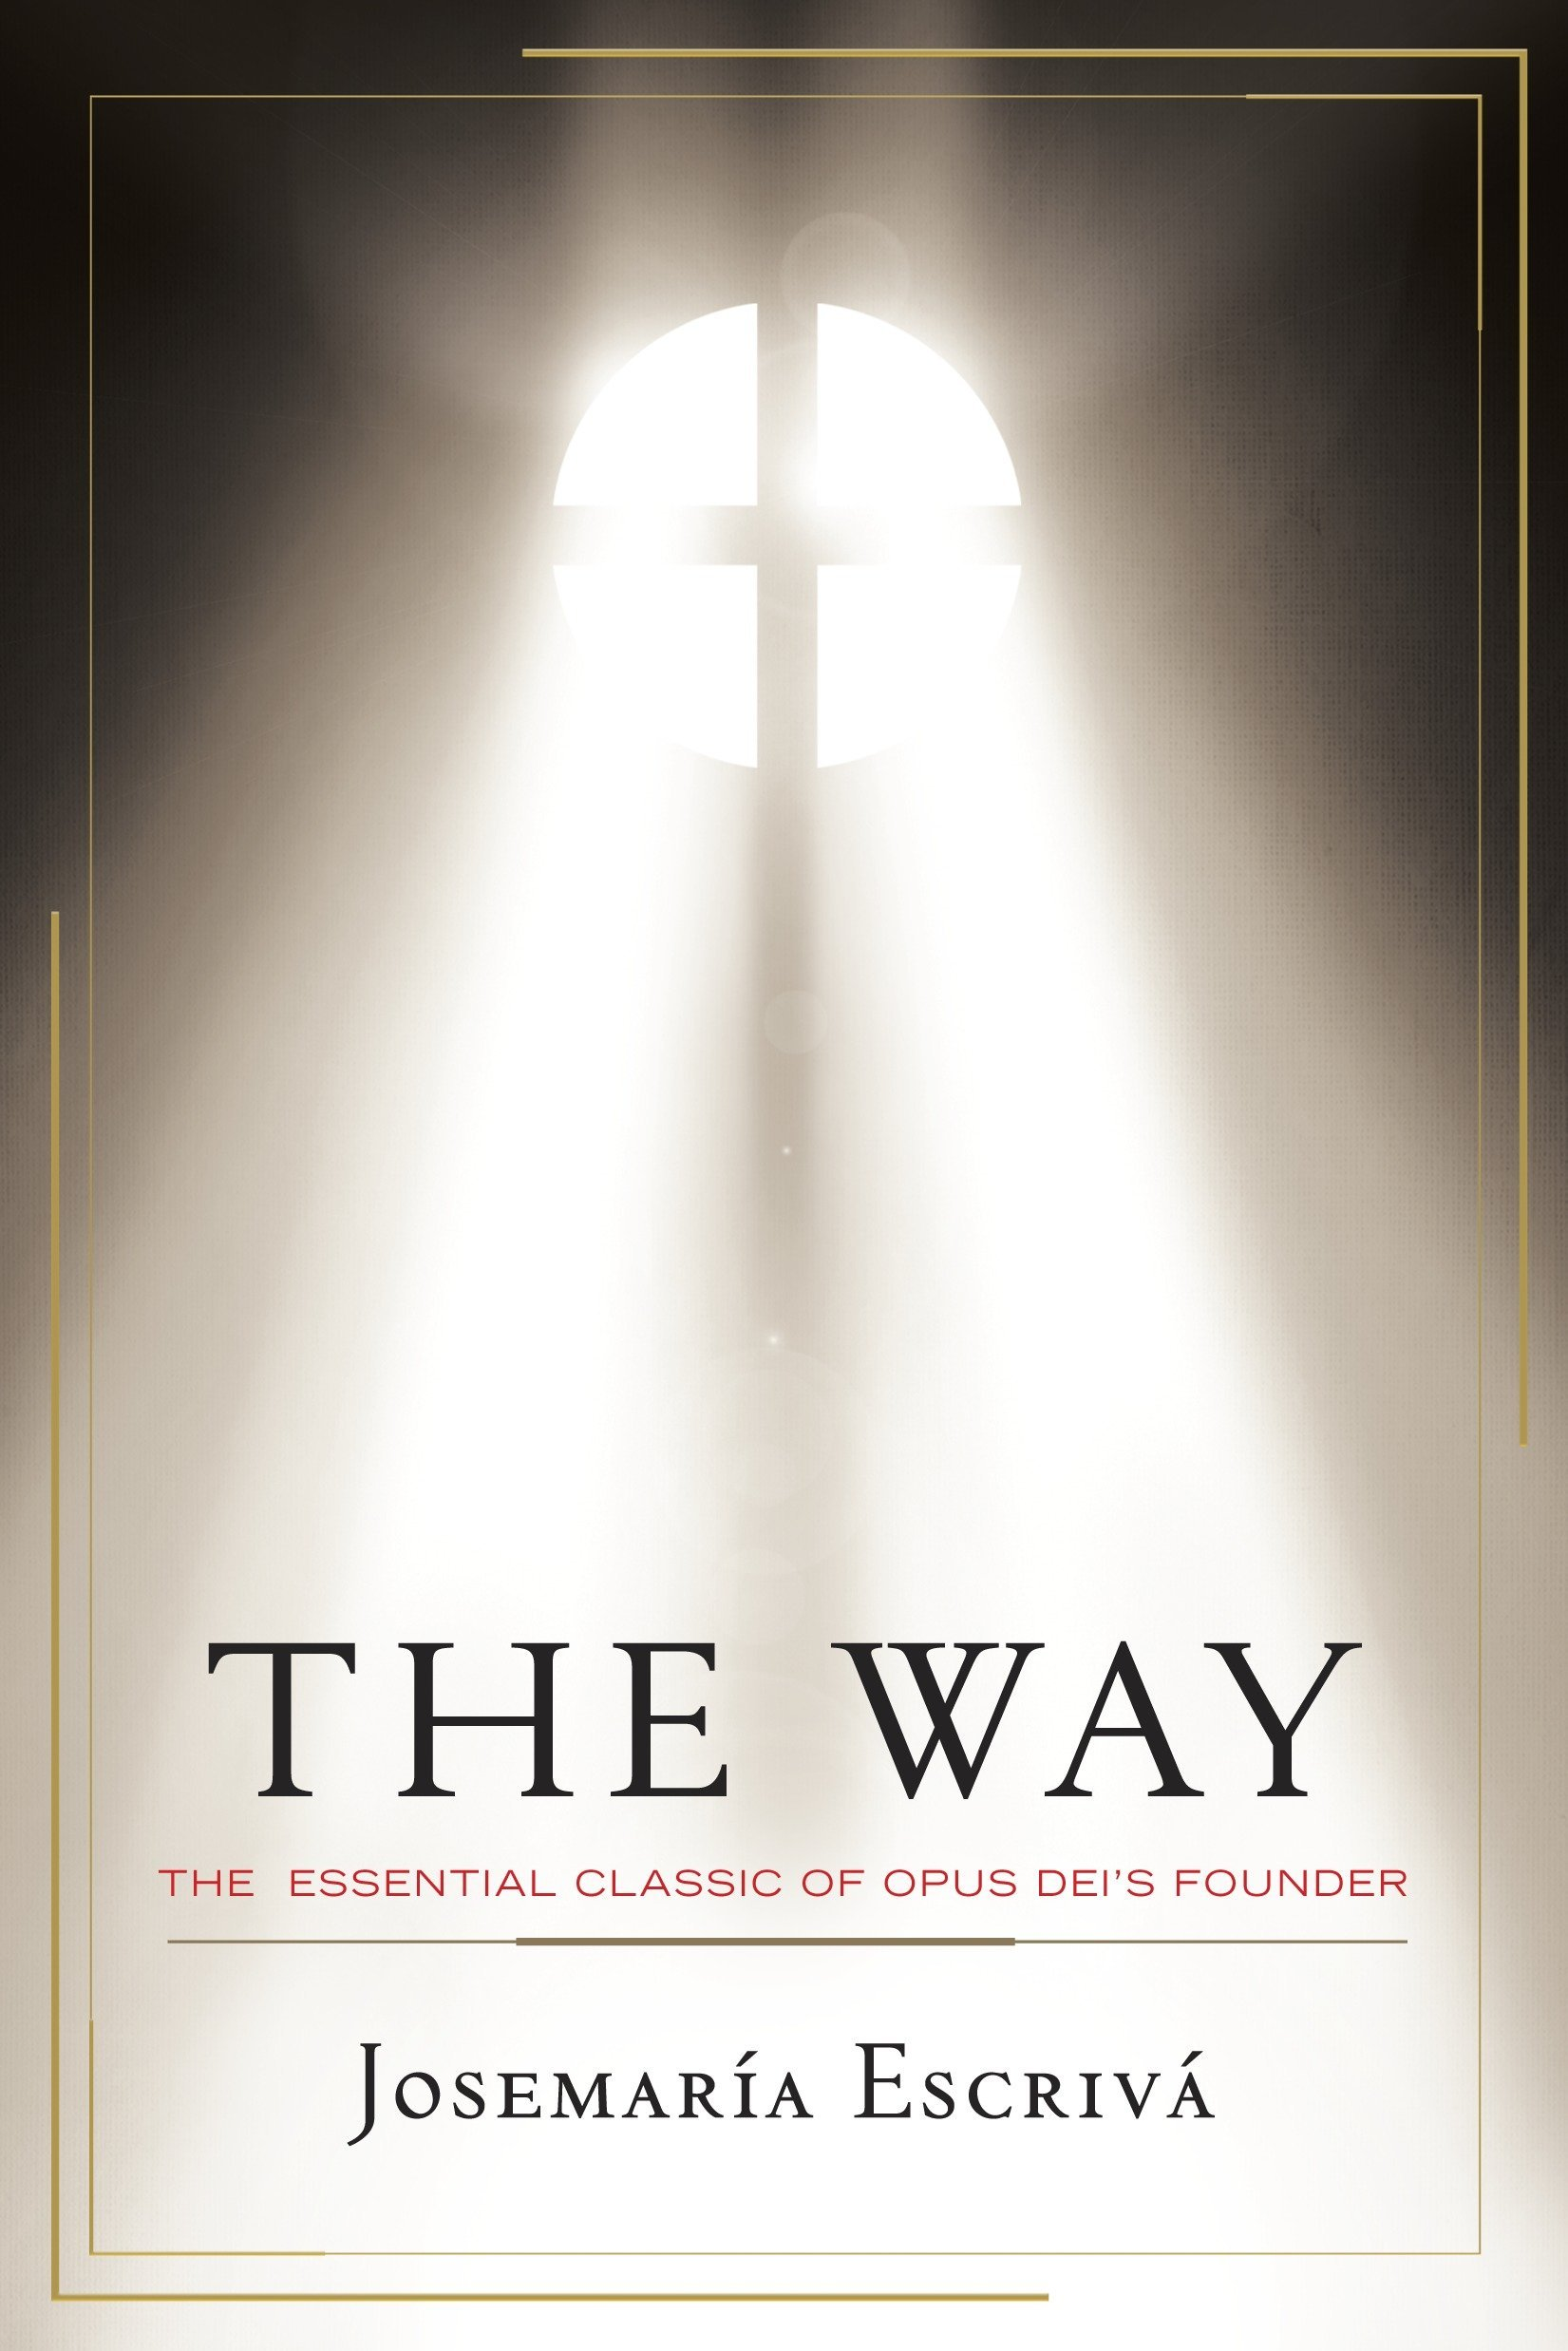 JOSEMARIA ESCRIVA THE WAY EPUB